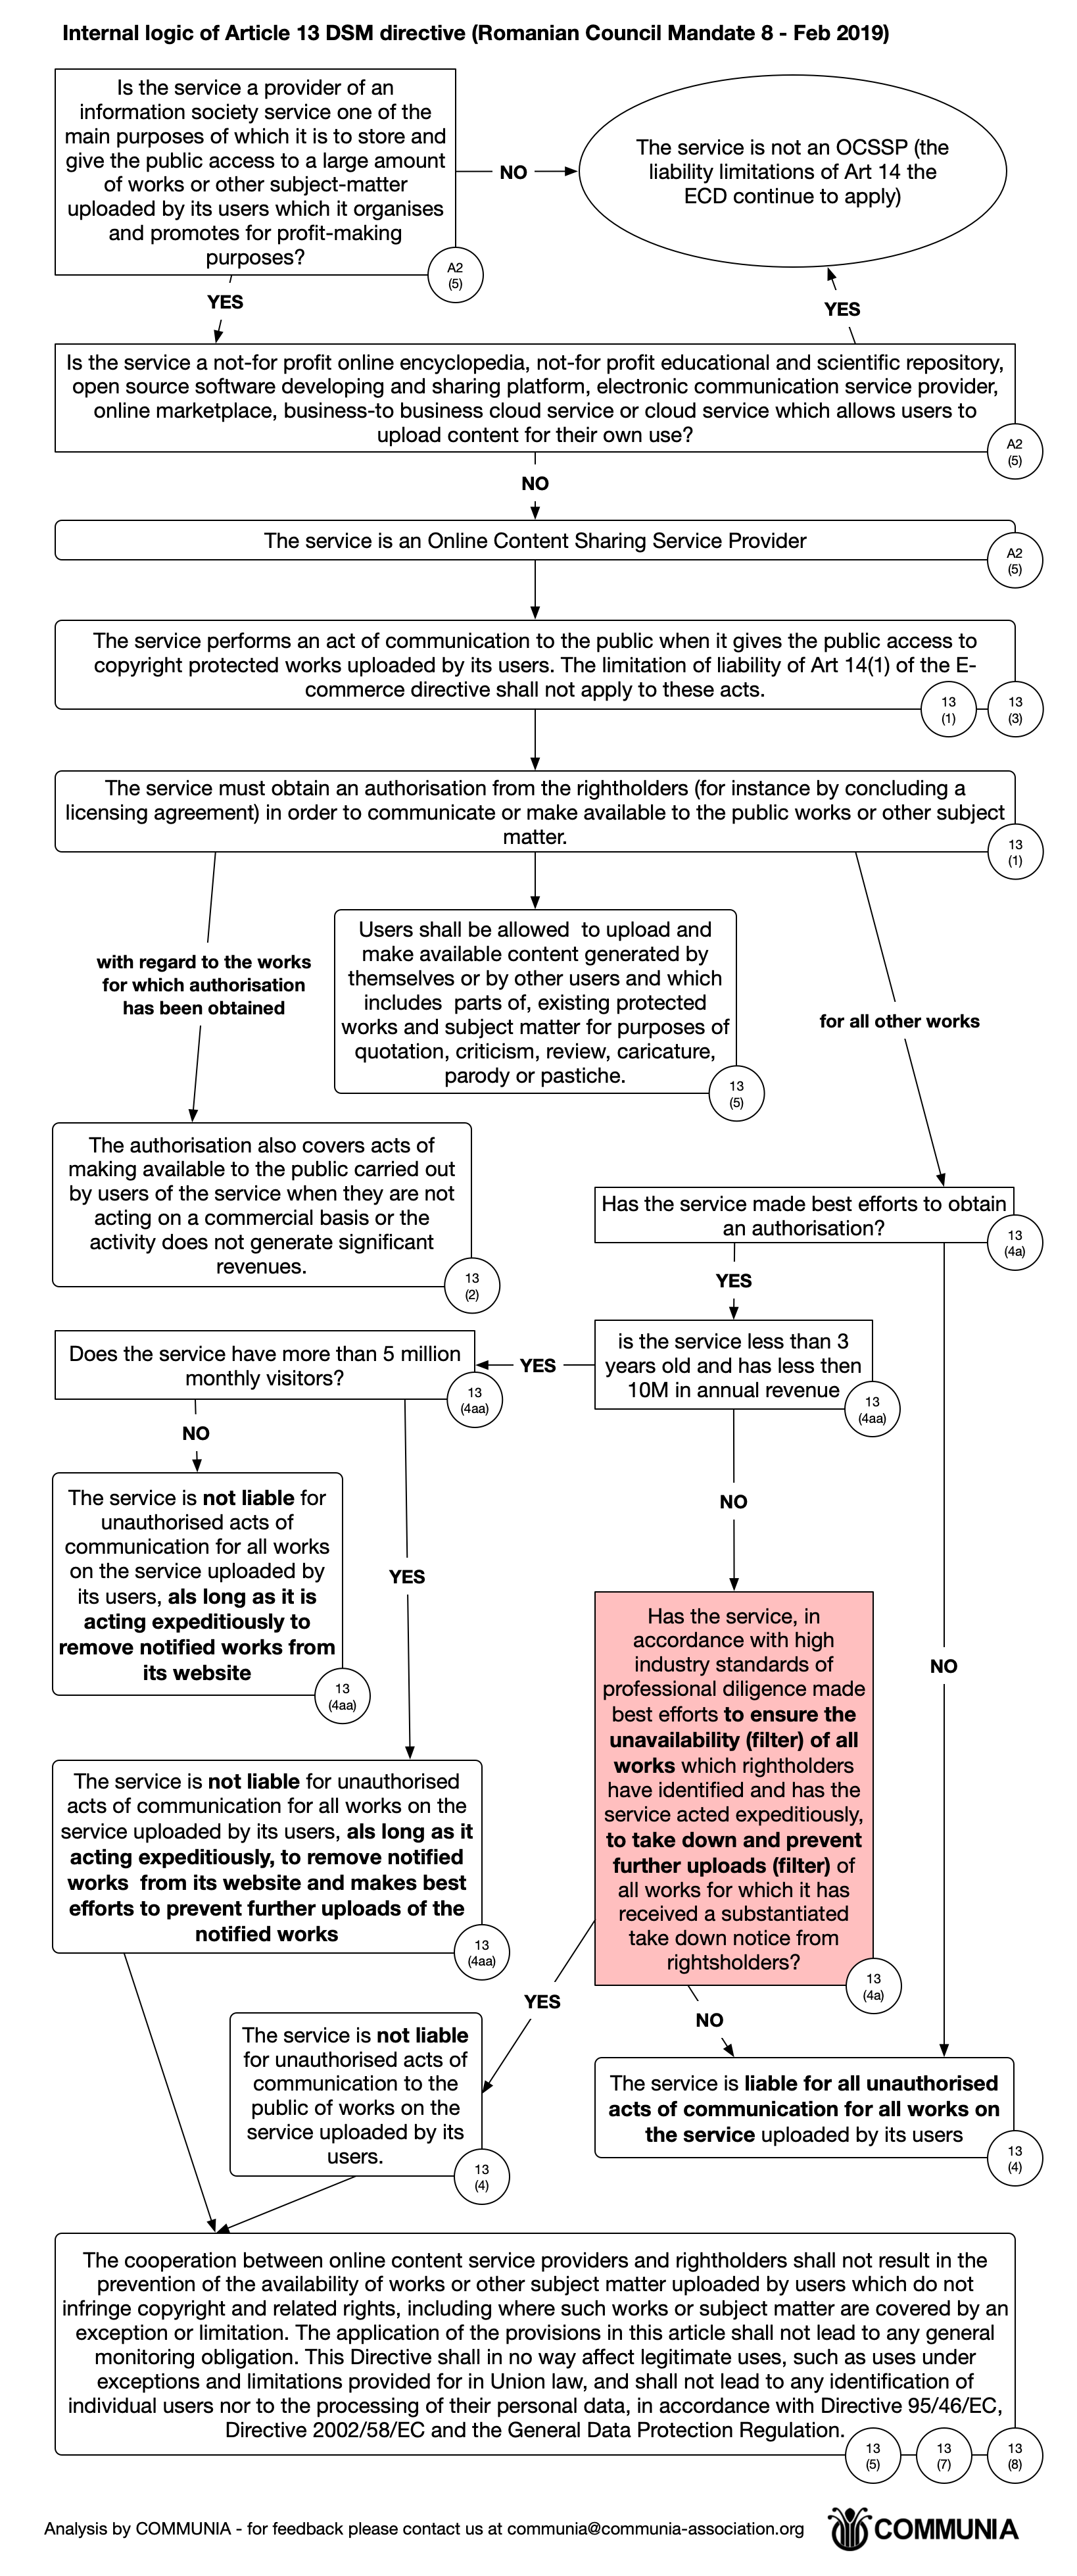 Article 13 flowchart (full)